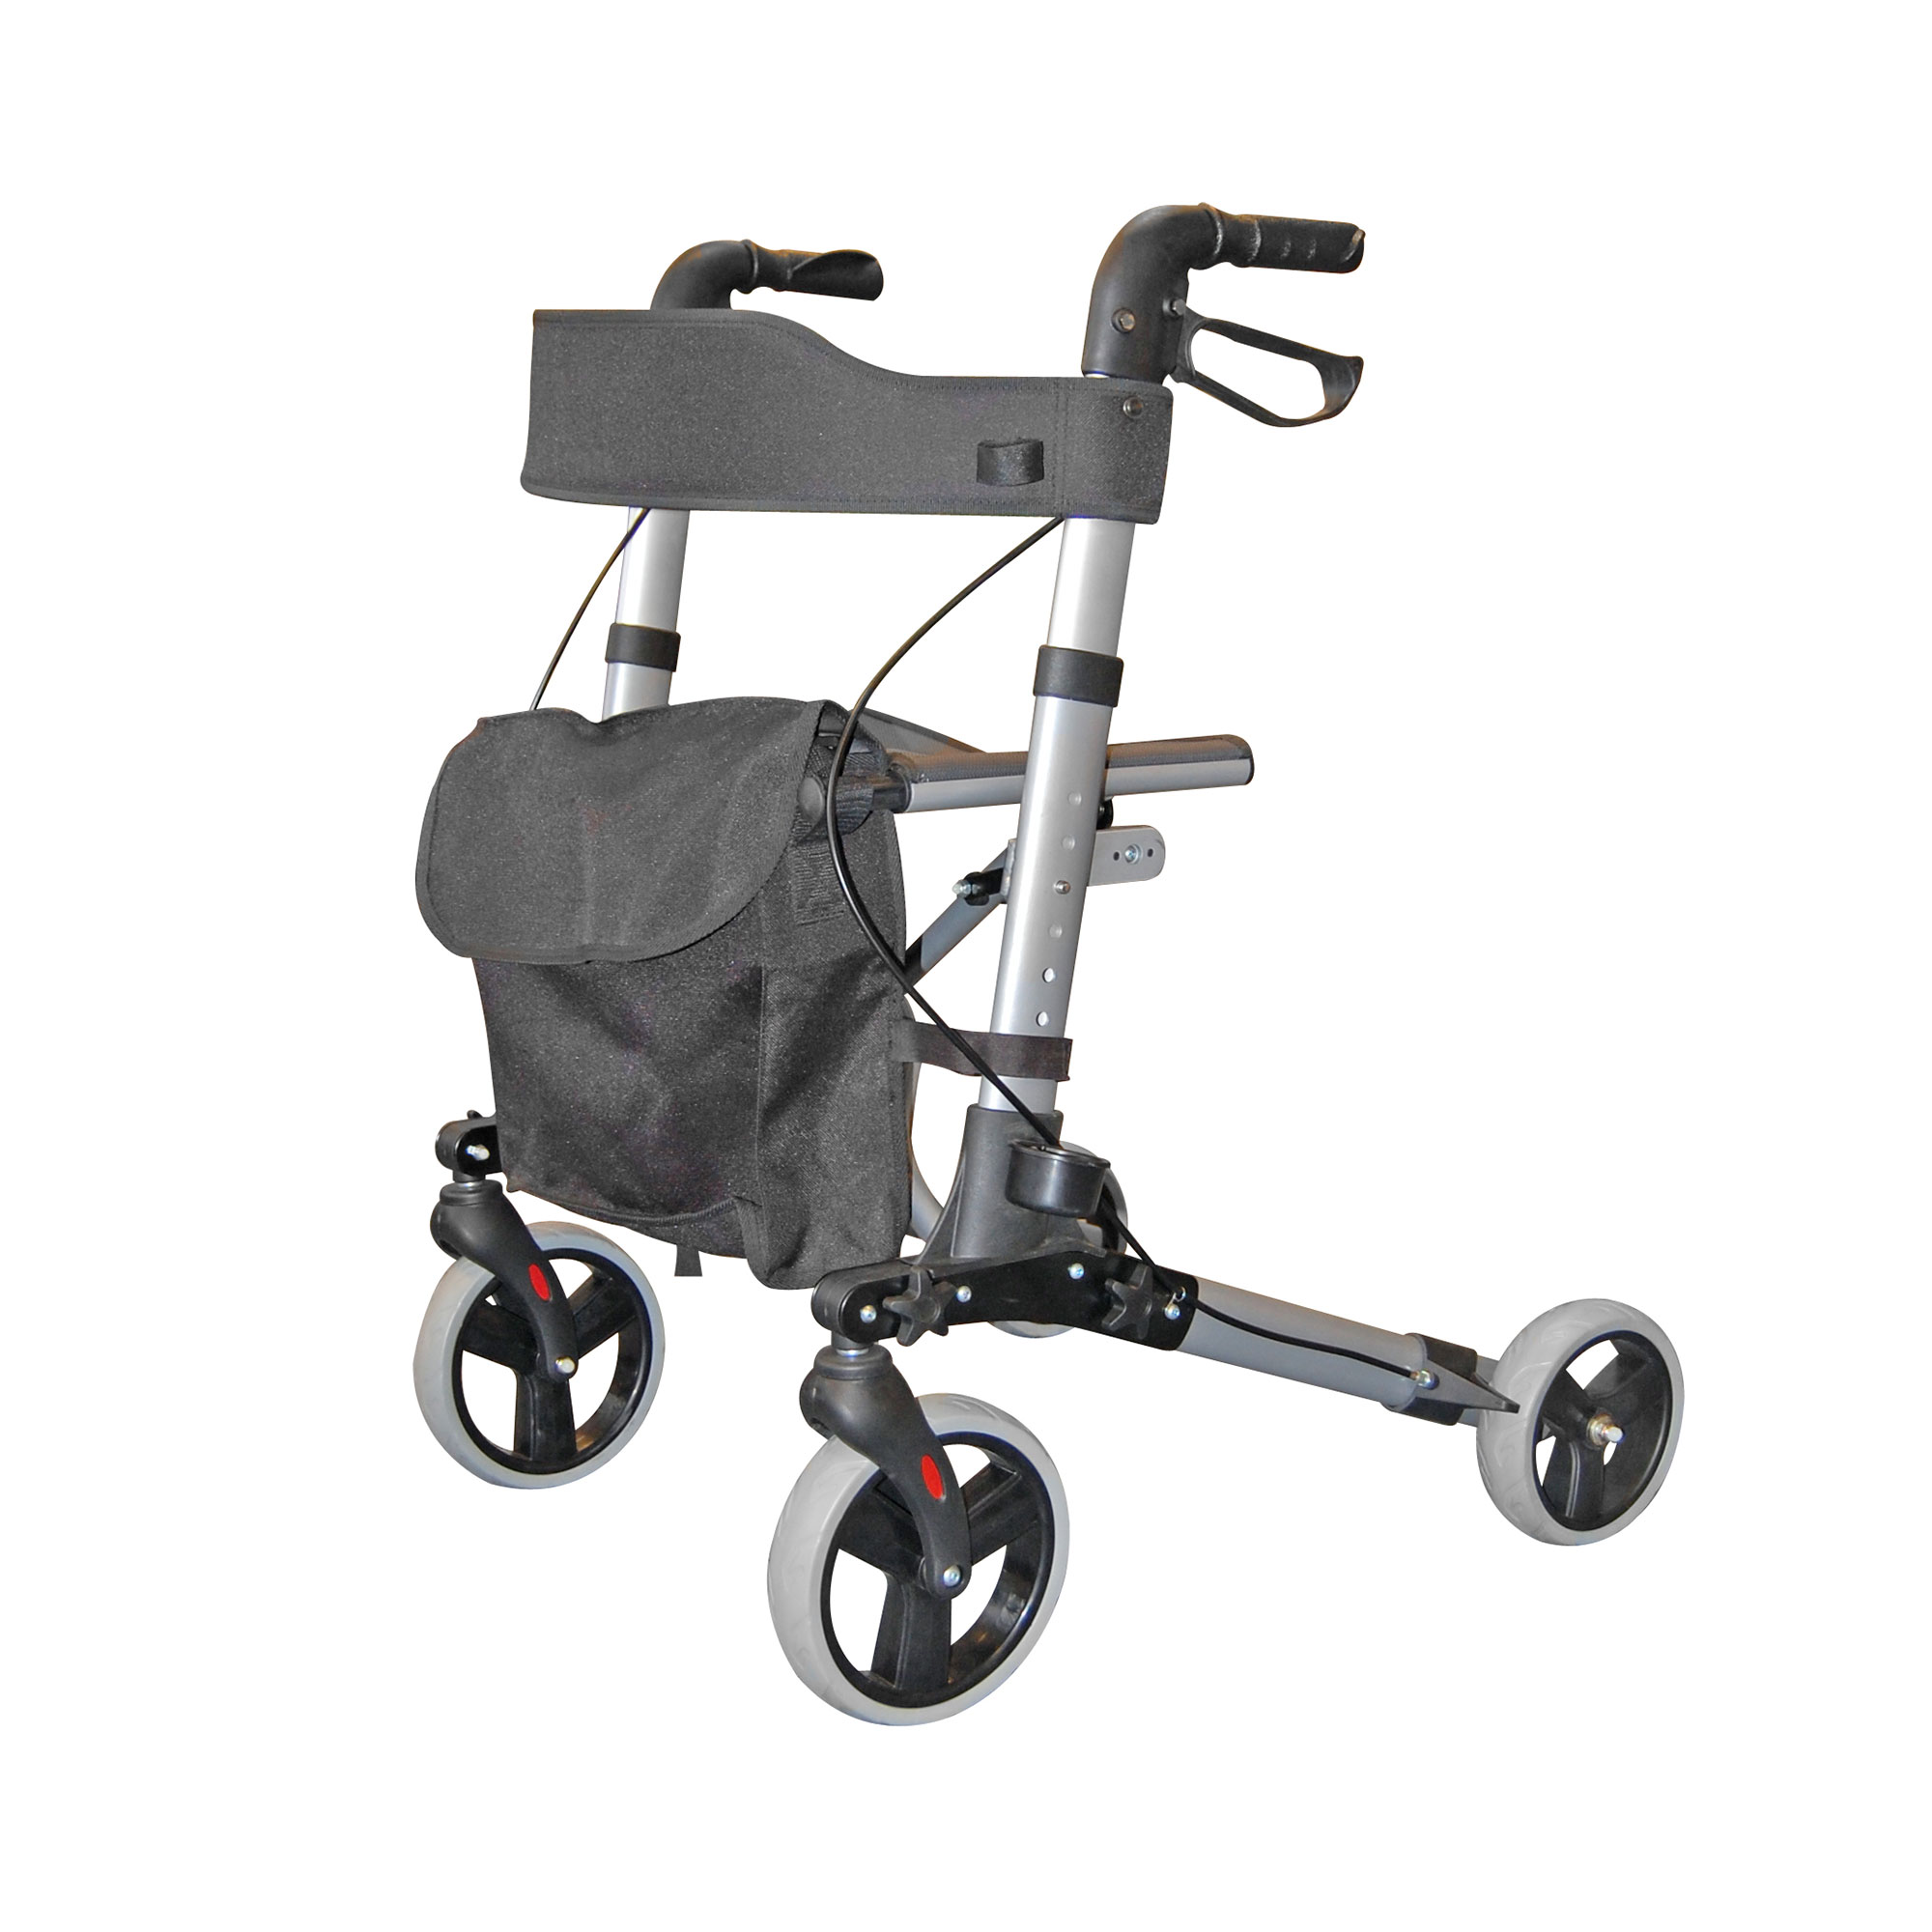 2465 City Walker Lightweight Folding Rollator Roma